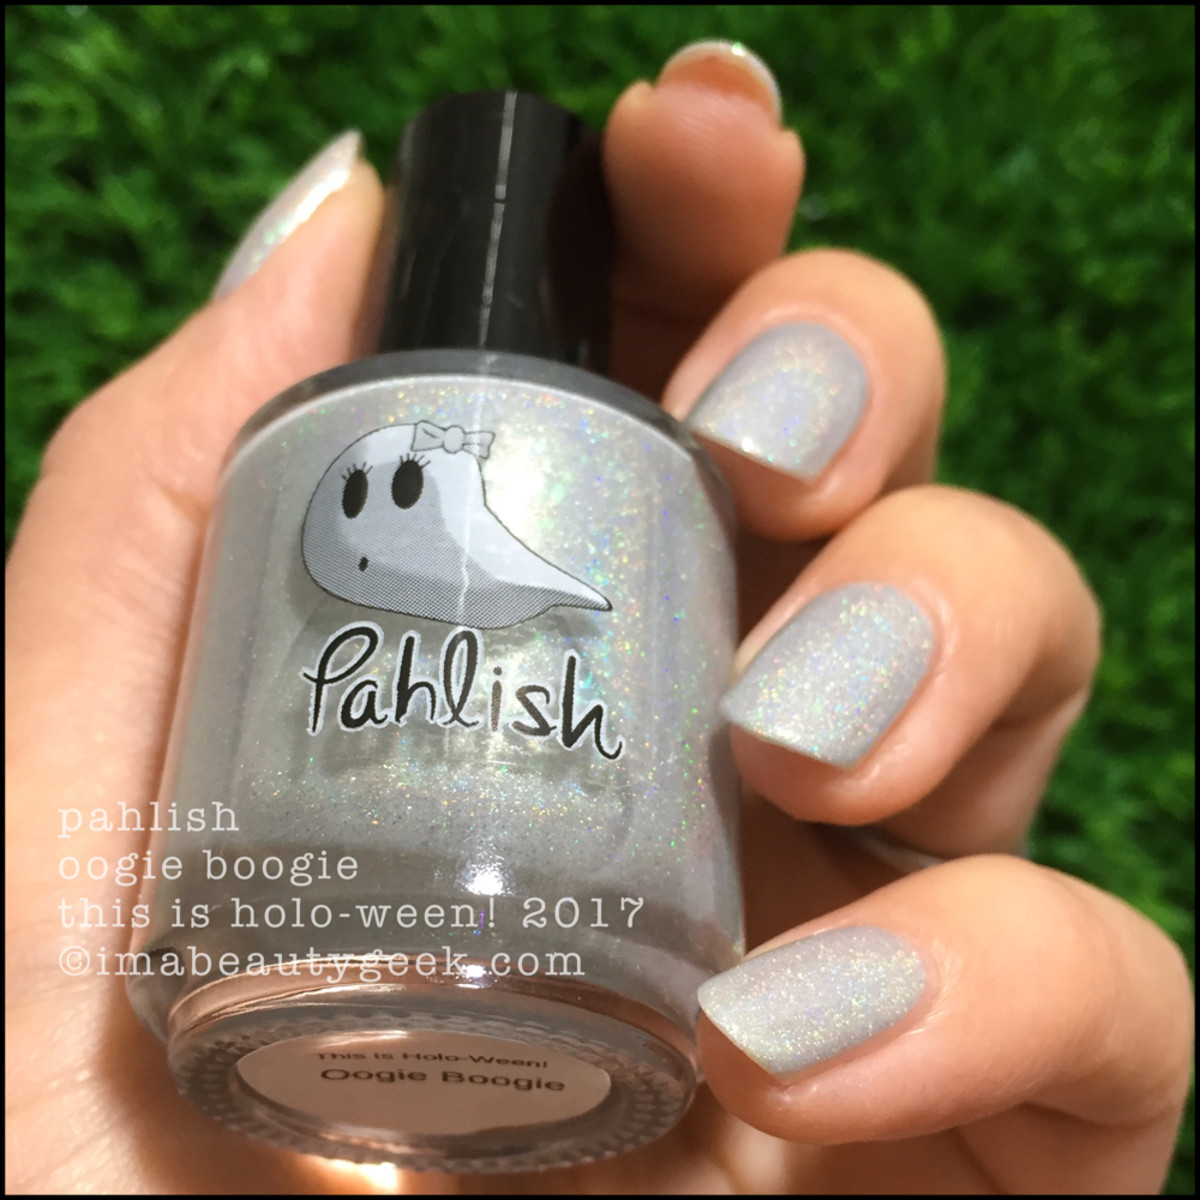 Pahlish Oogie Boogie 2 - This is Holoween 2017!